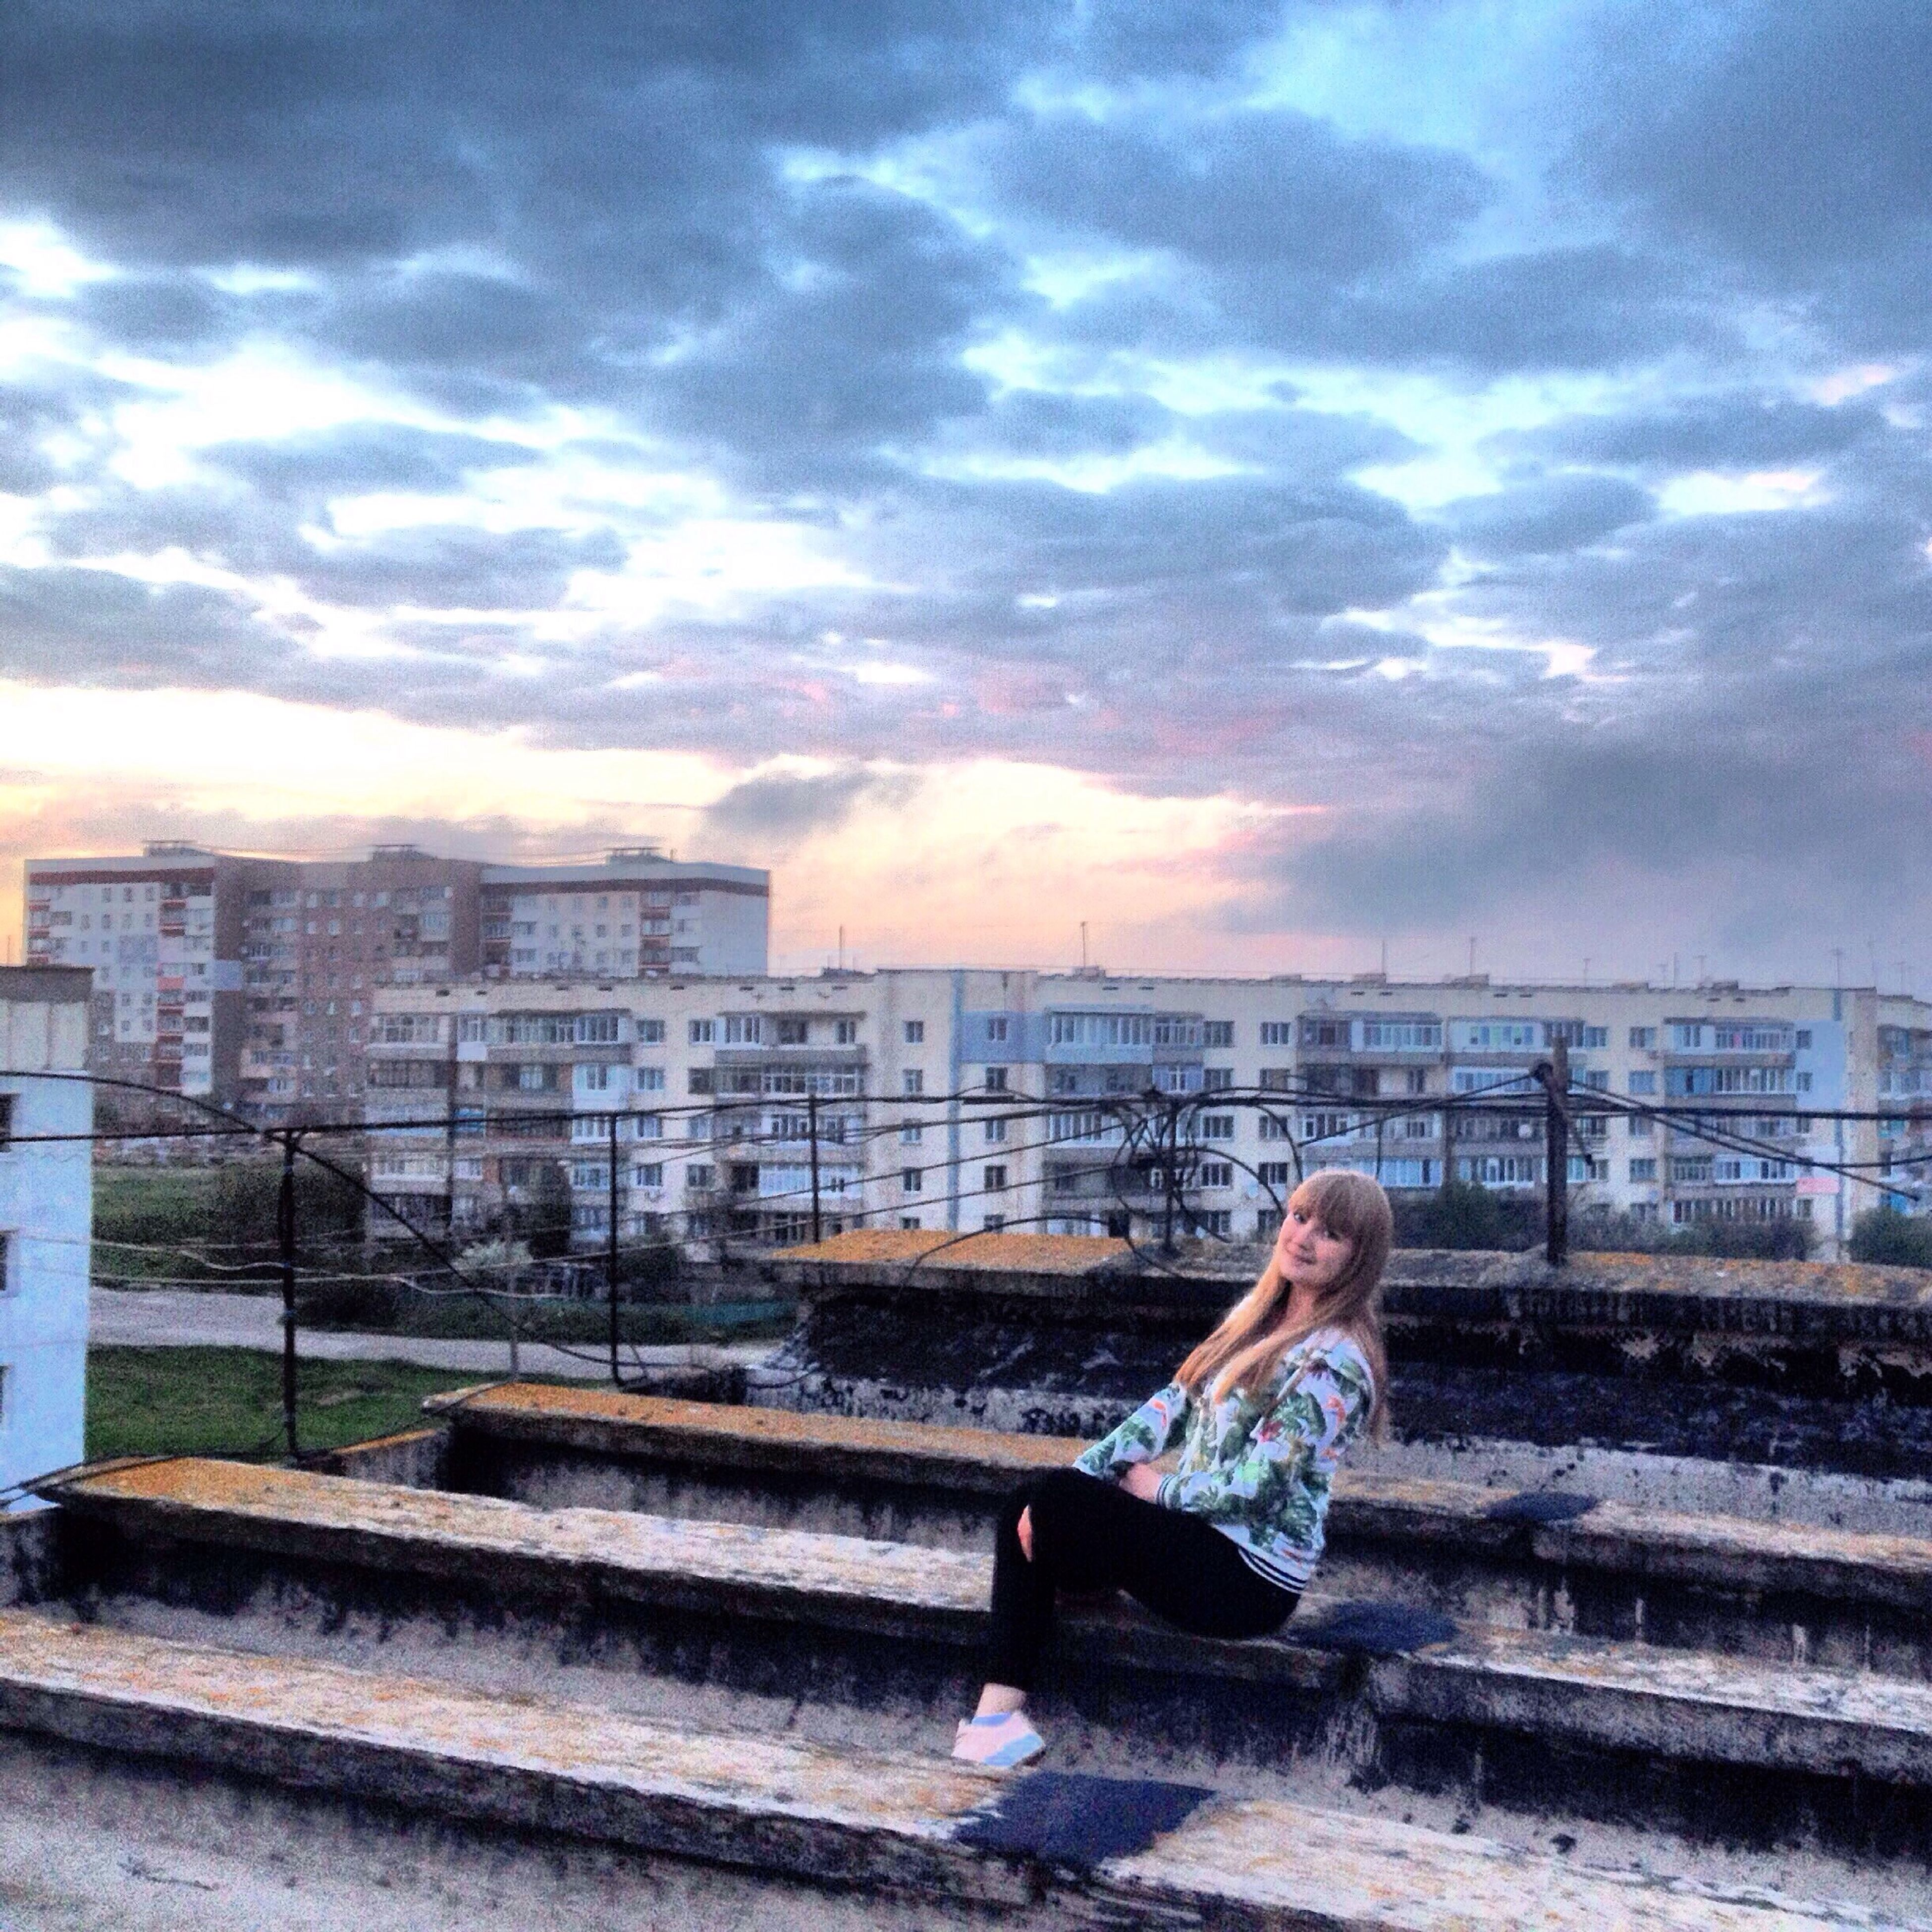 sky, one animal, building exterior, animal themes, built structure, cloud - sky, architecture, bird, cloud, one person, sunset, cloudy, animals in the wild, side view, outdoors, railing, full length, sitting, perching, wood - material